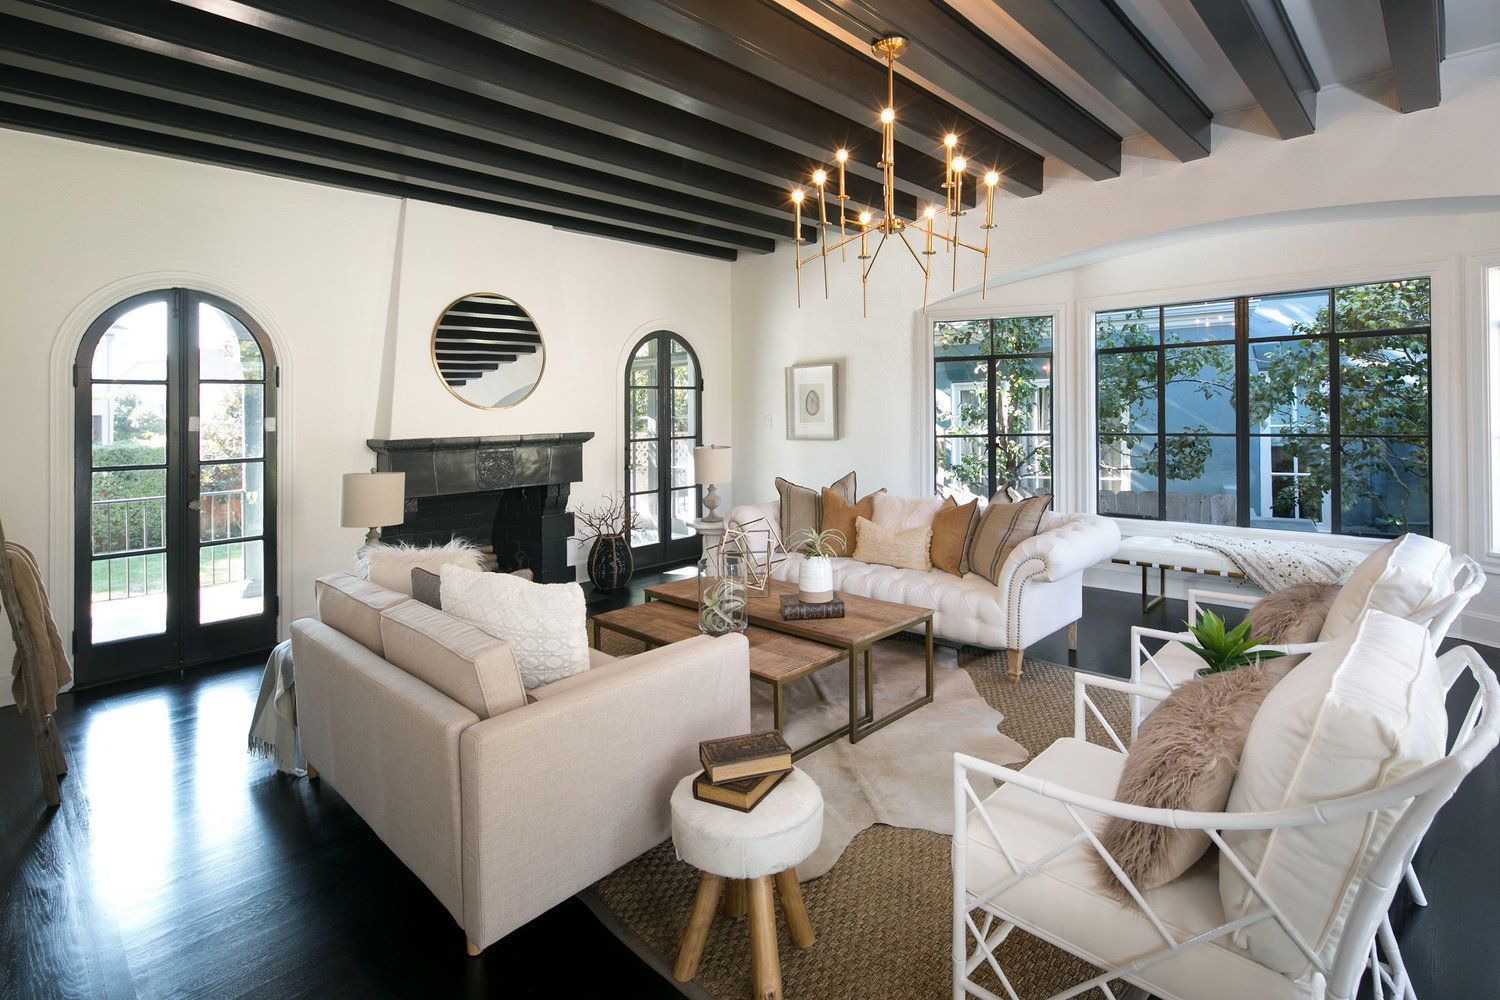 4 Marvelous Mediterranean Style Living Rooms With Images